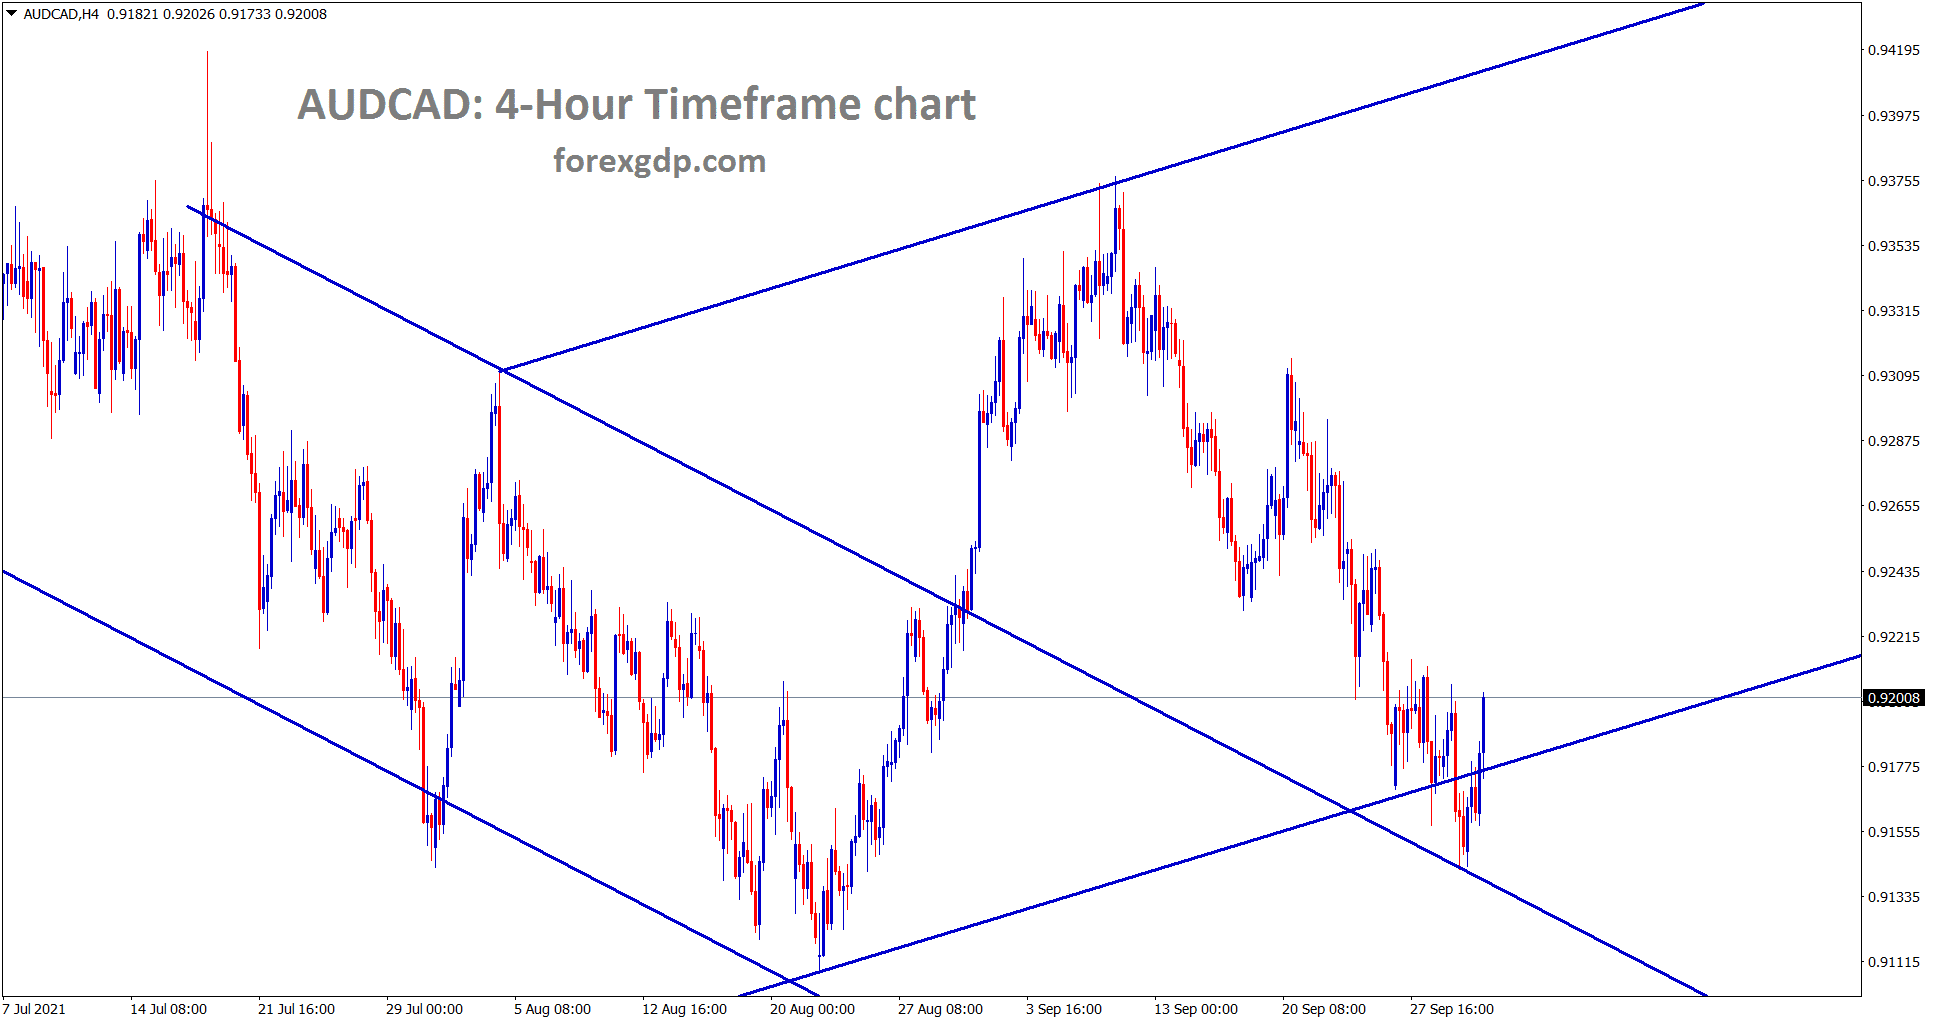 AUDCAD is rebounding after retesting the previous broken desending channel line.